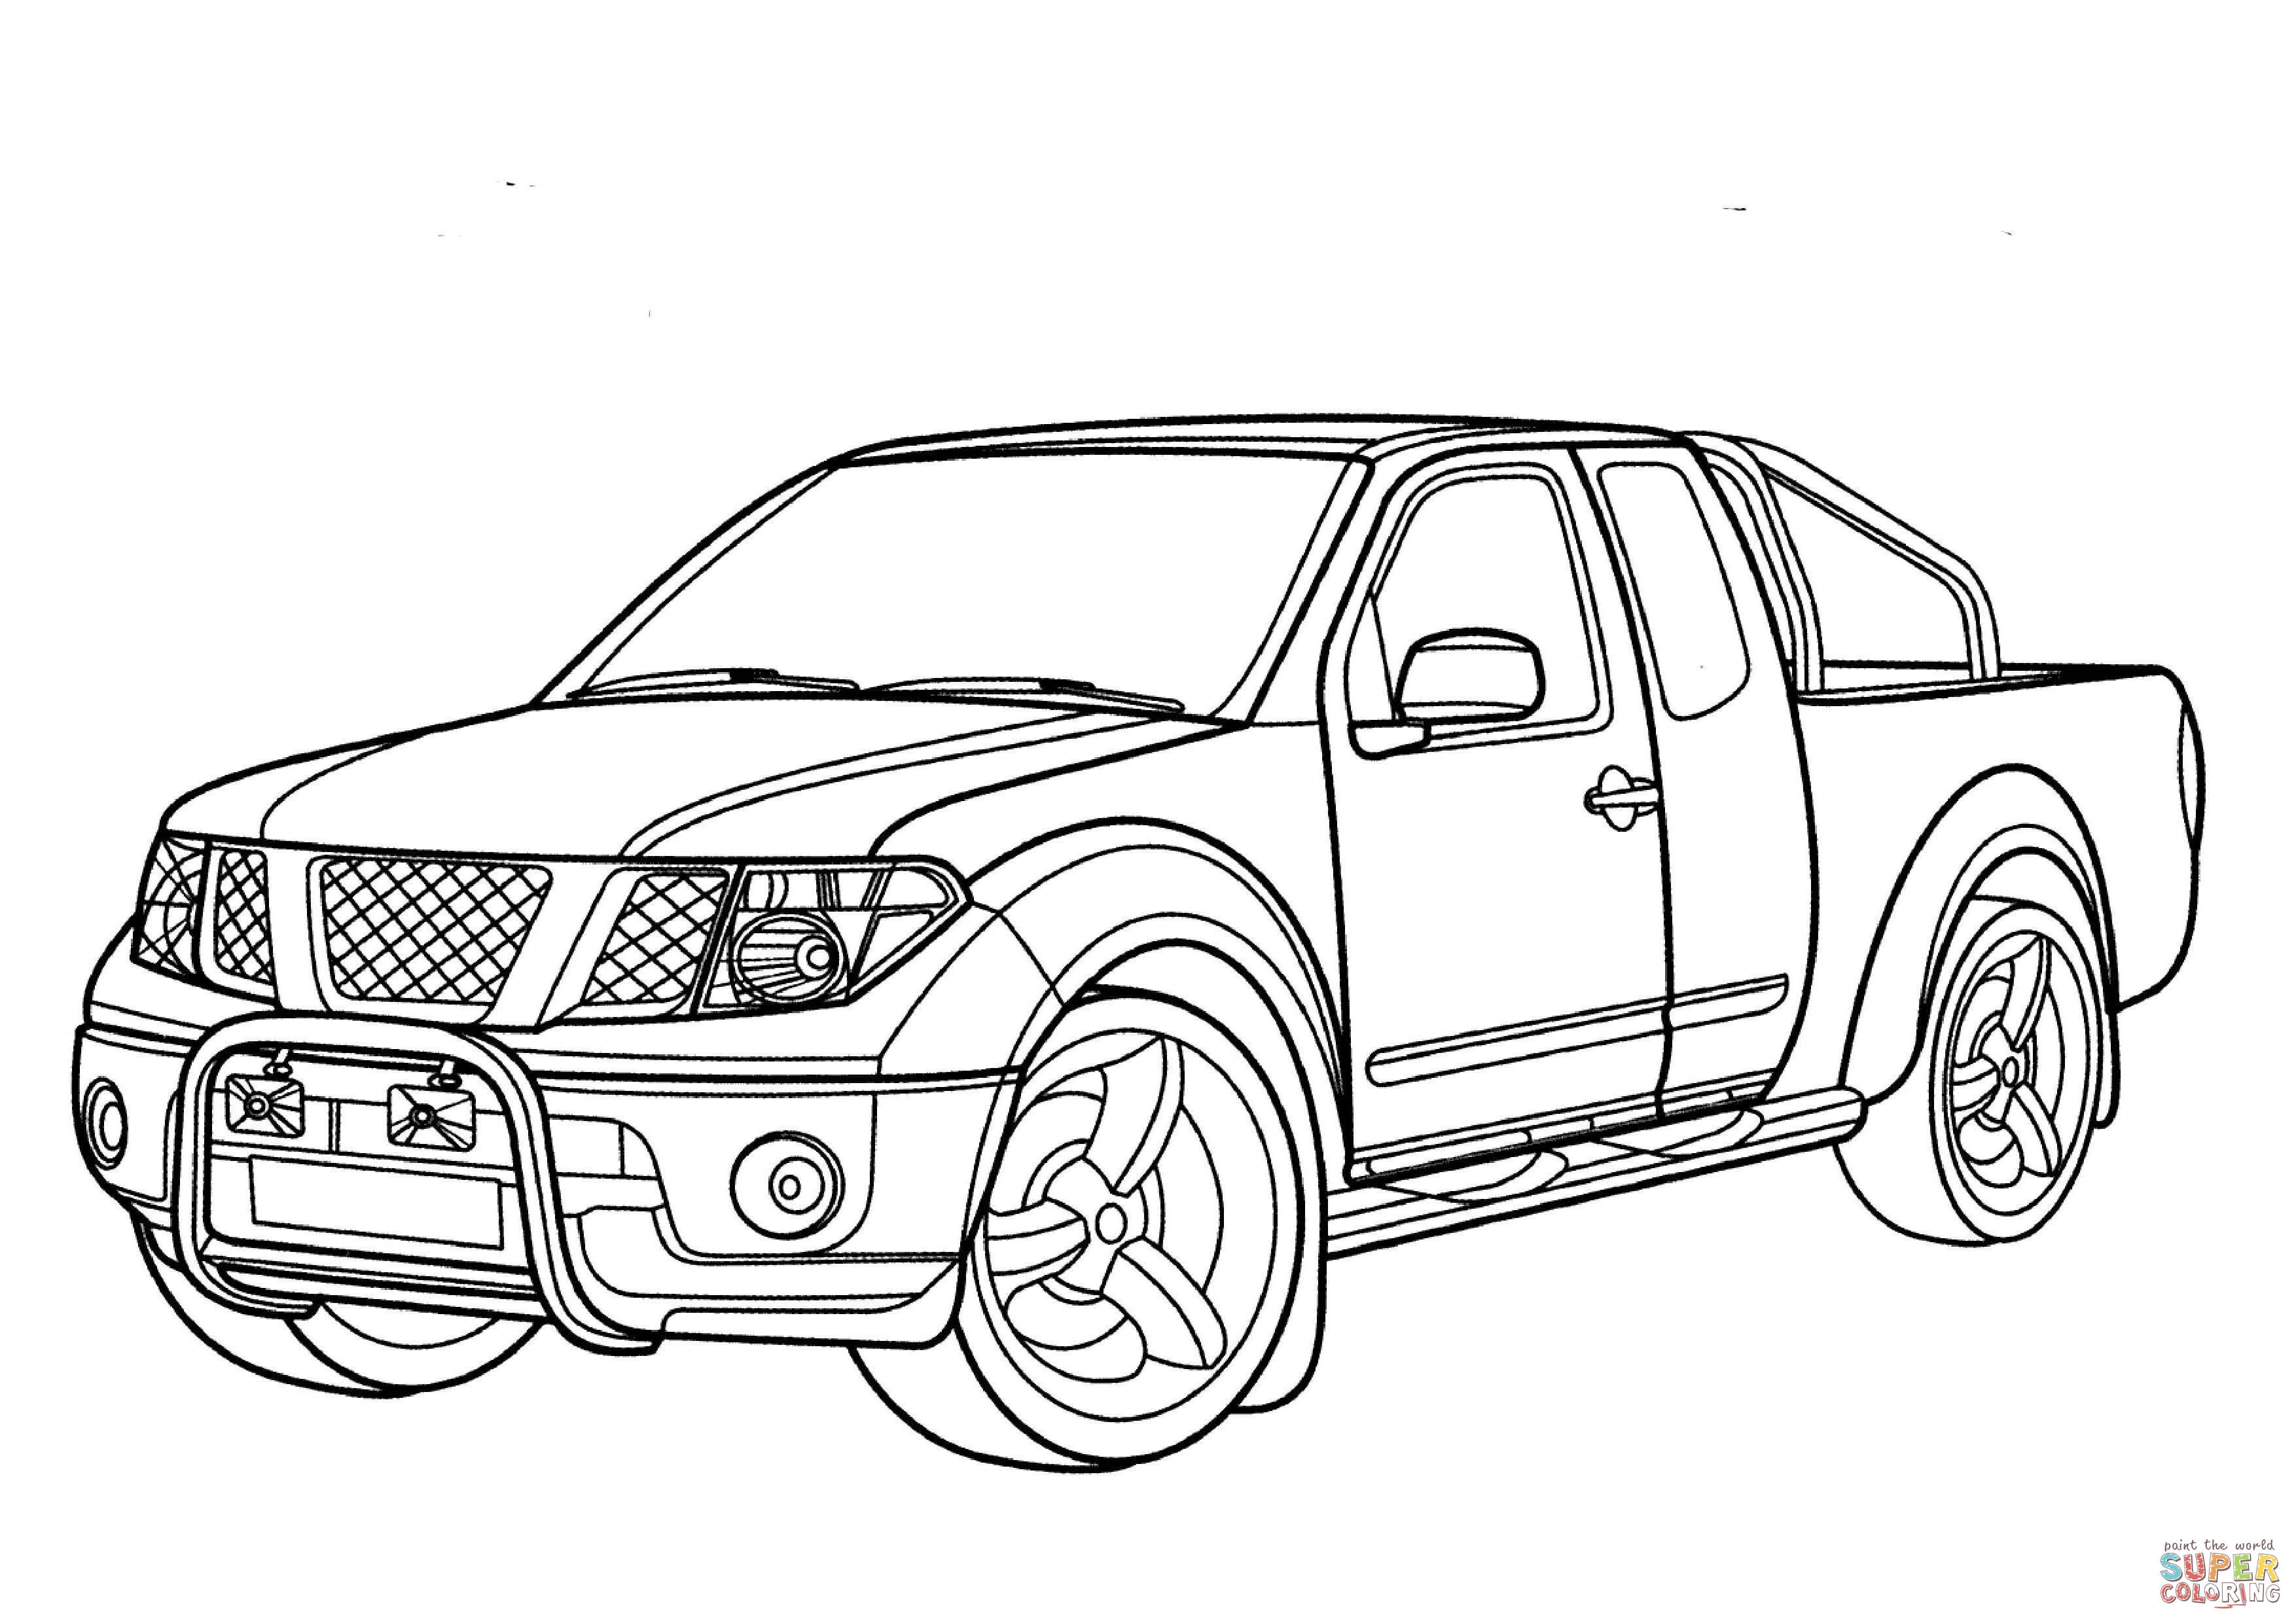 Nissan skyline drawing skyline coloring pages 28 images coloring book philadelphia nissan skyline